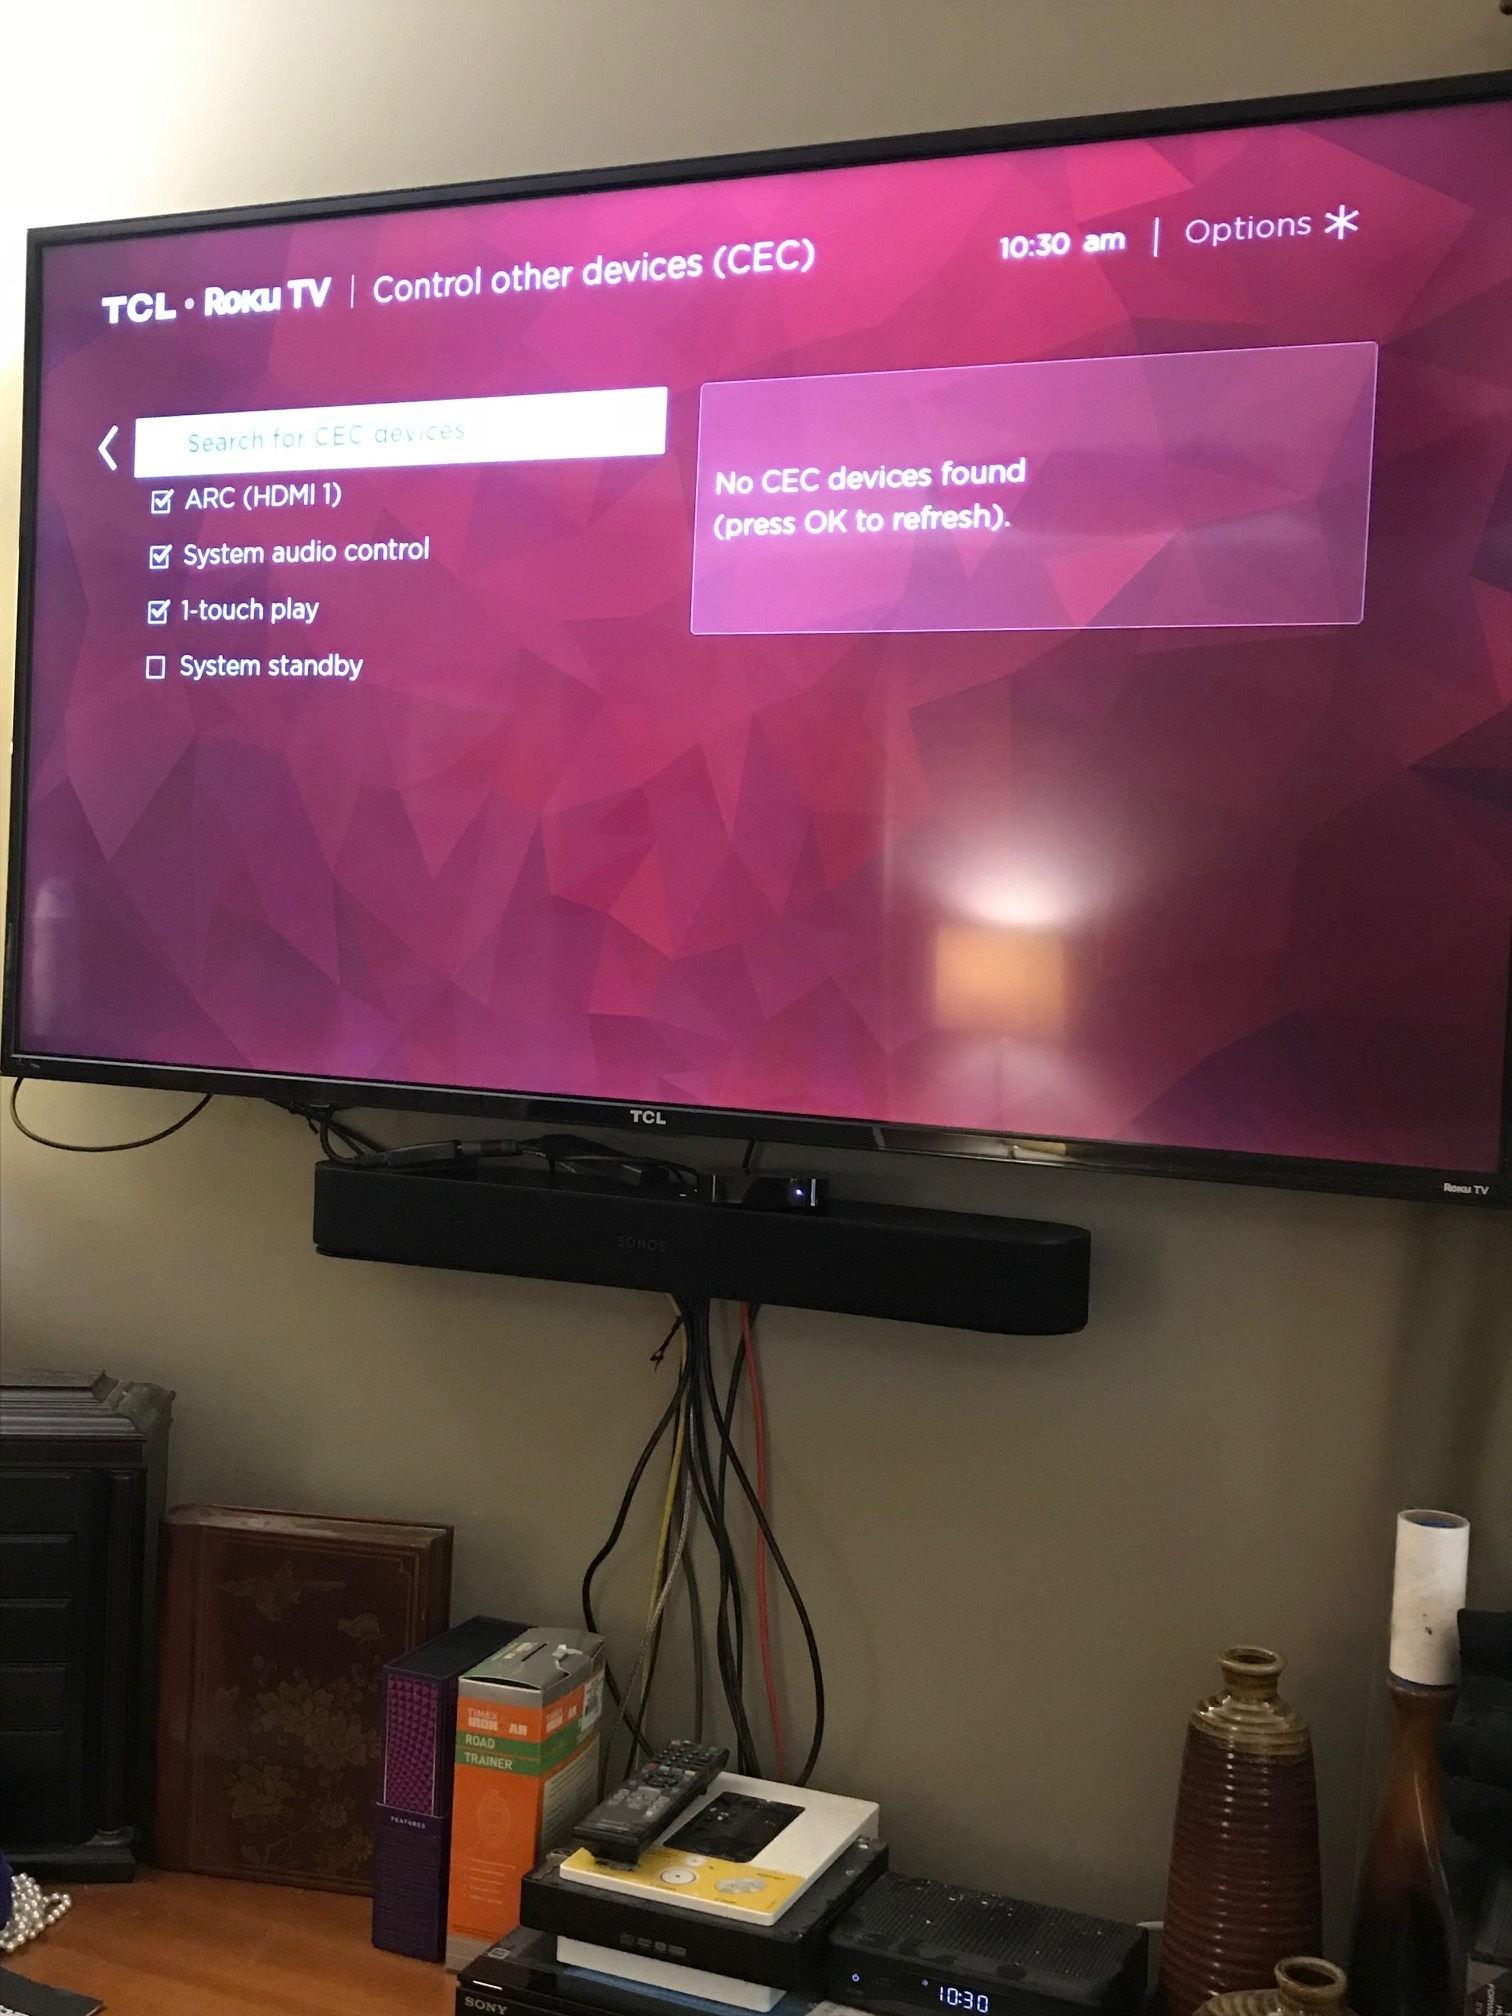 Beam not recogonizing tv | Sonos Community